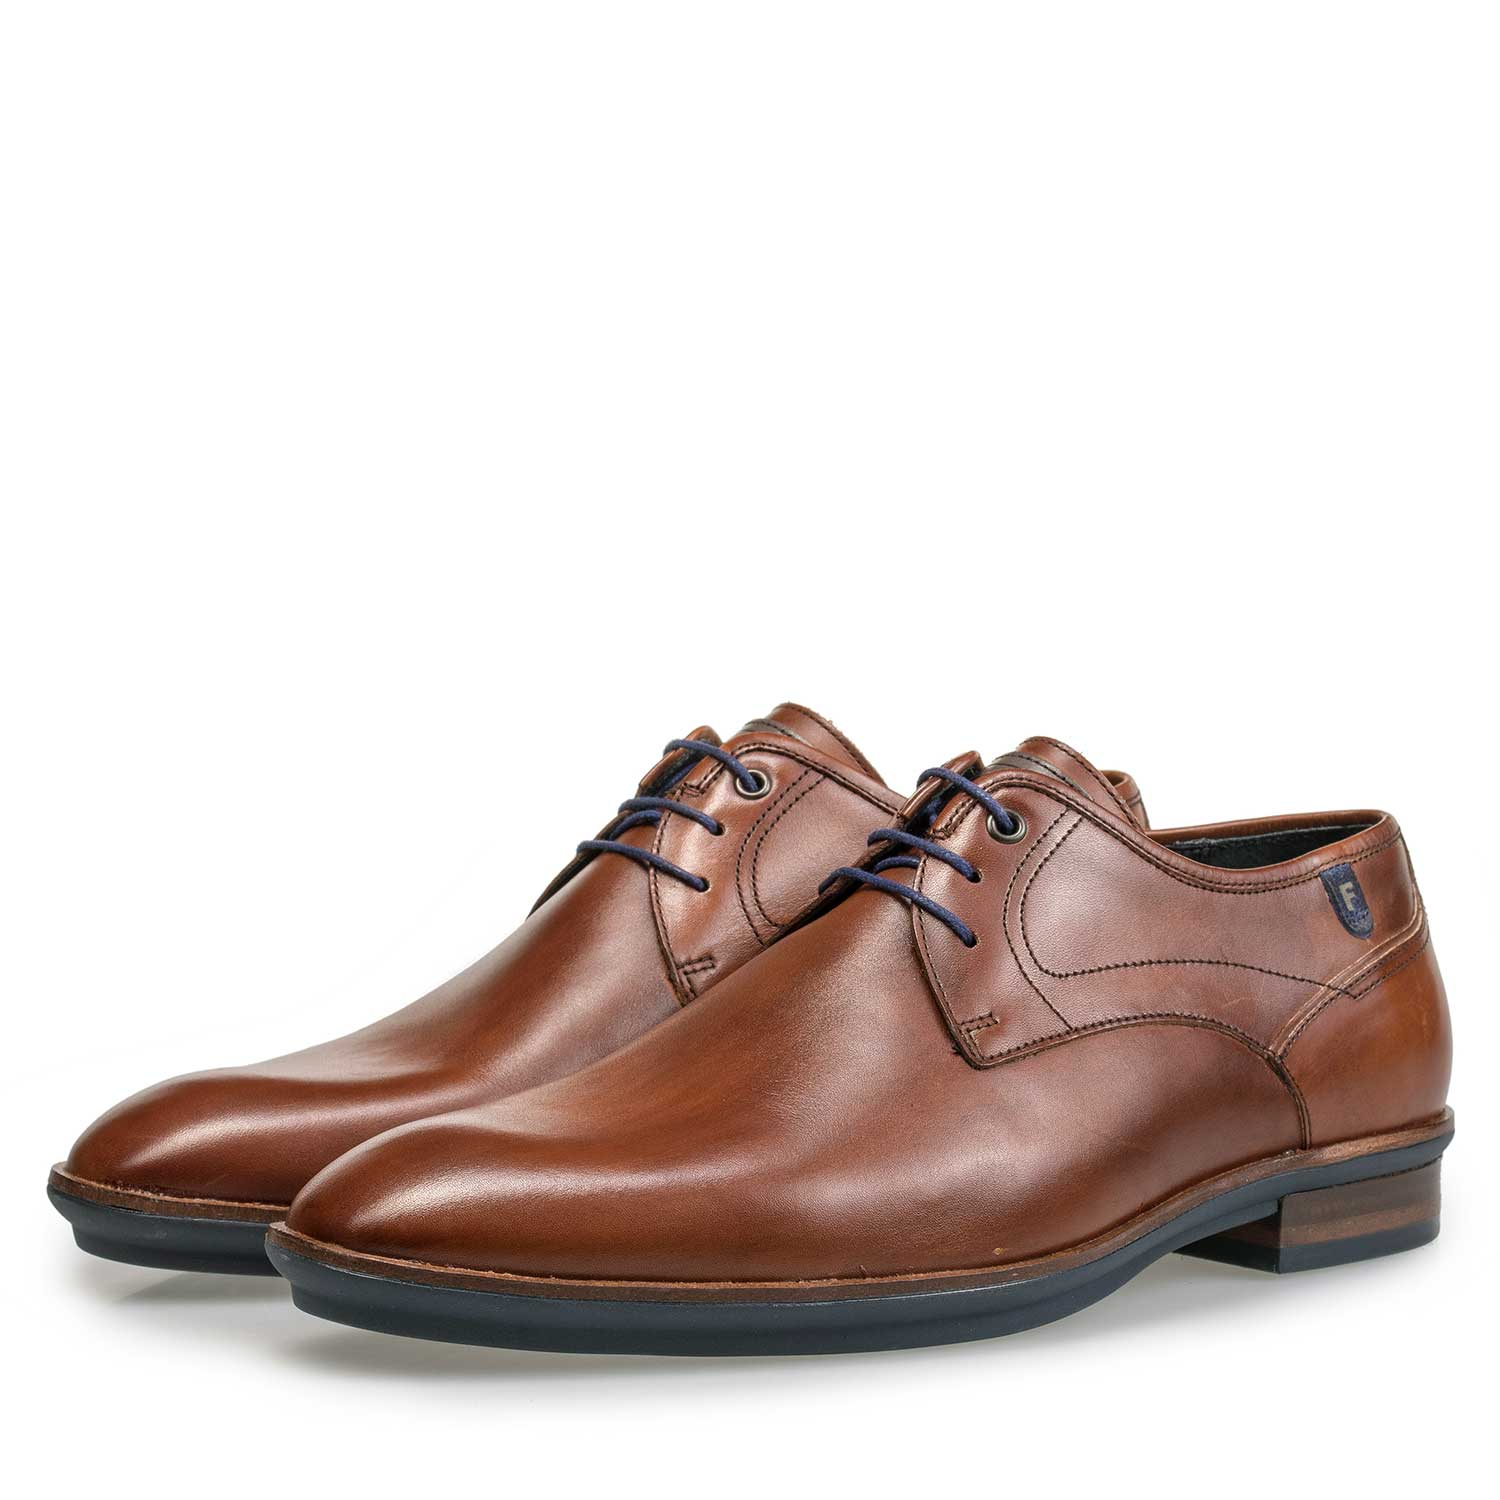 14293/02 - Cognac-coloured calf's leather lace shoe